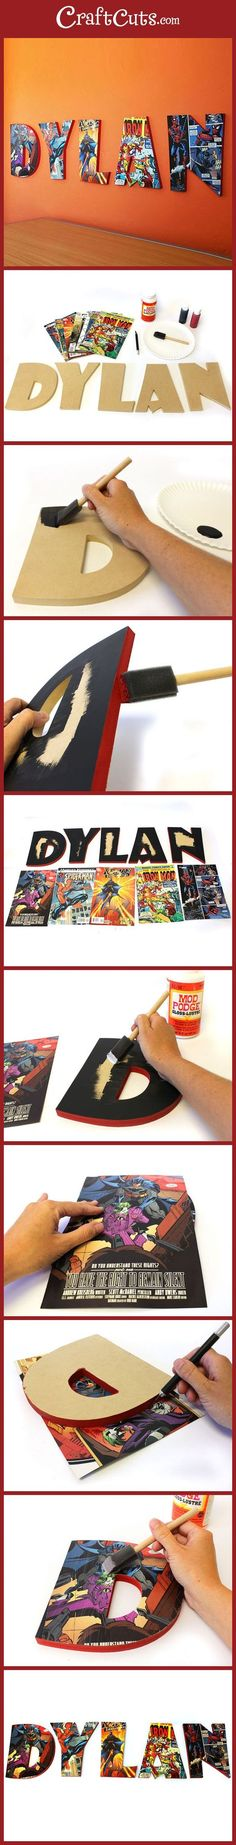 DIY Comic Book Letters Custom Wood Letters + Comics is part of Comic books diy - How to make Comic Book Letters with wooden letters, a couple of comics and Mod Podge to seal the deal Custom kids room wall letters with comics Superhero Room, Superhero Party, Book Letters, Wooden Letters, Diy Letters, How To Make Diy, Custom Wood, Boy Room, Diy For Kids